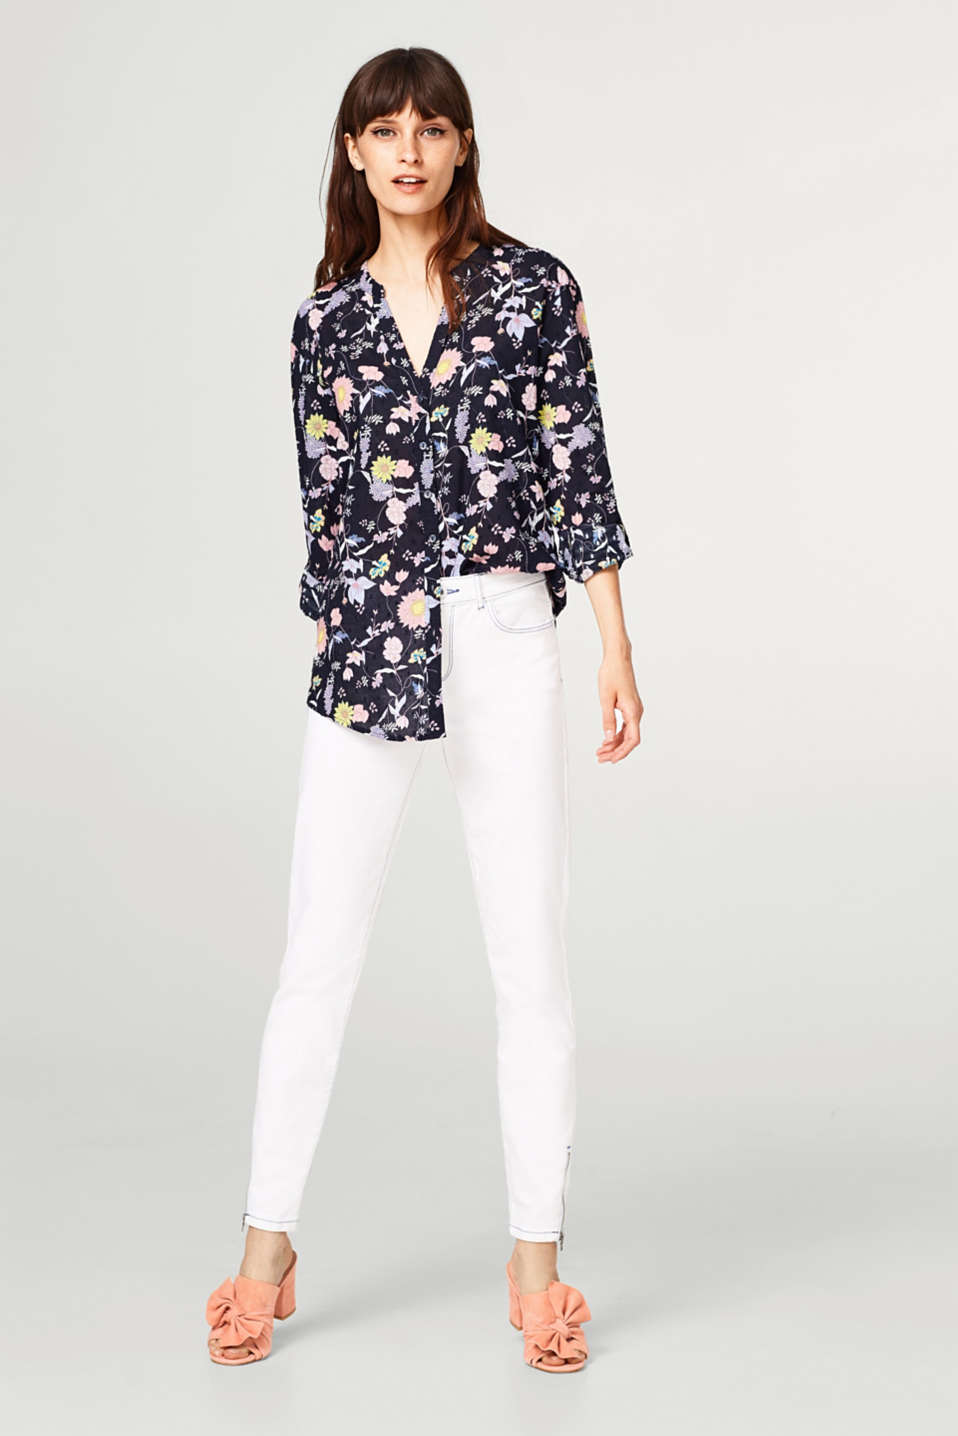 Lightweight turn-up blouse with a floral print